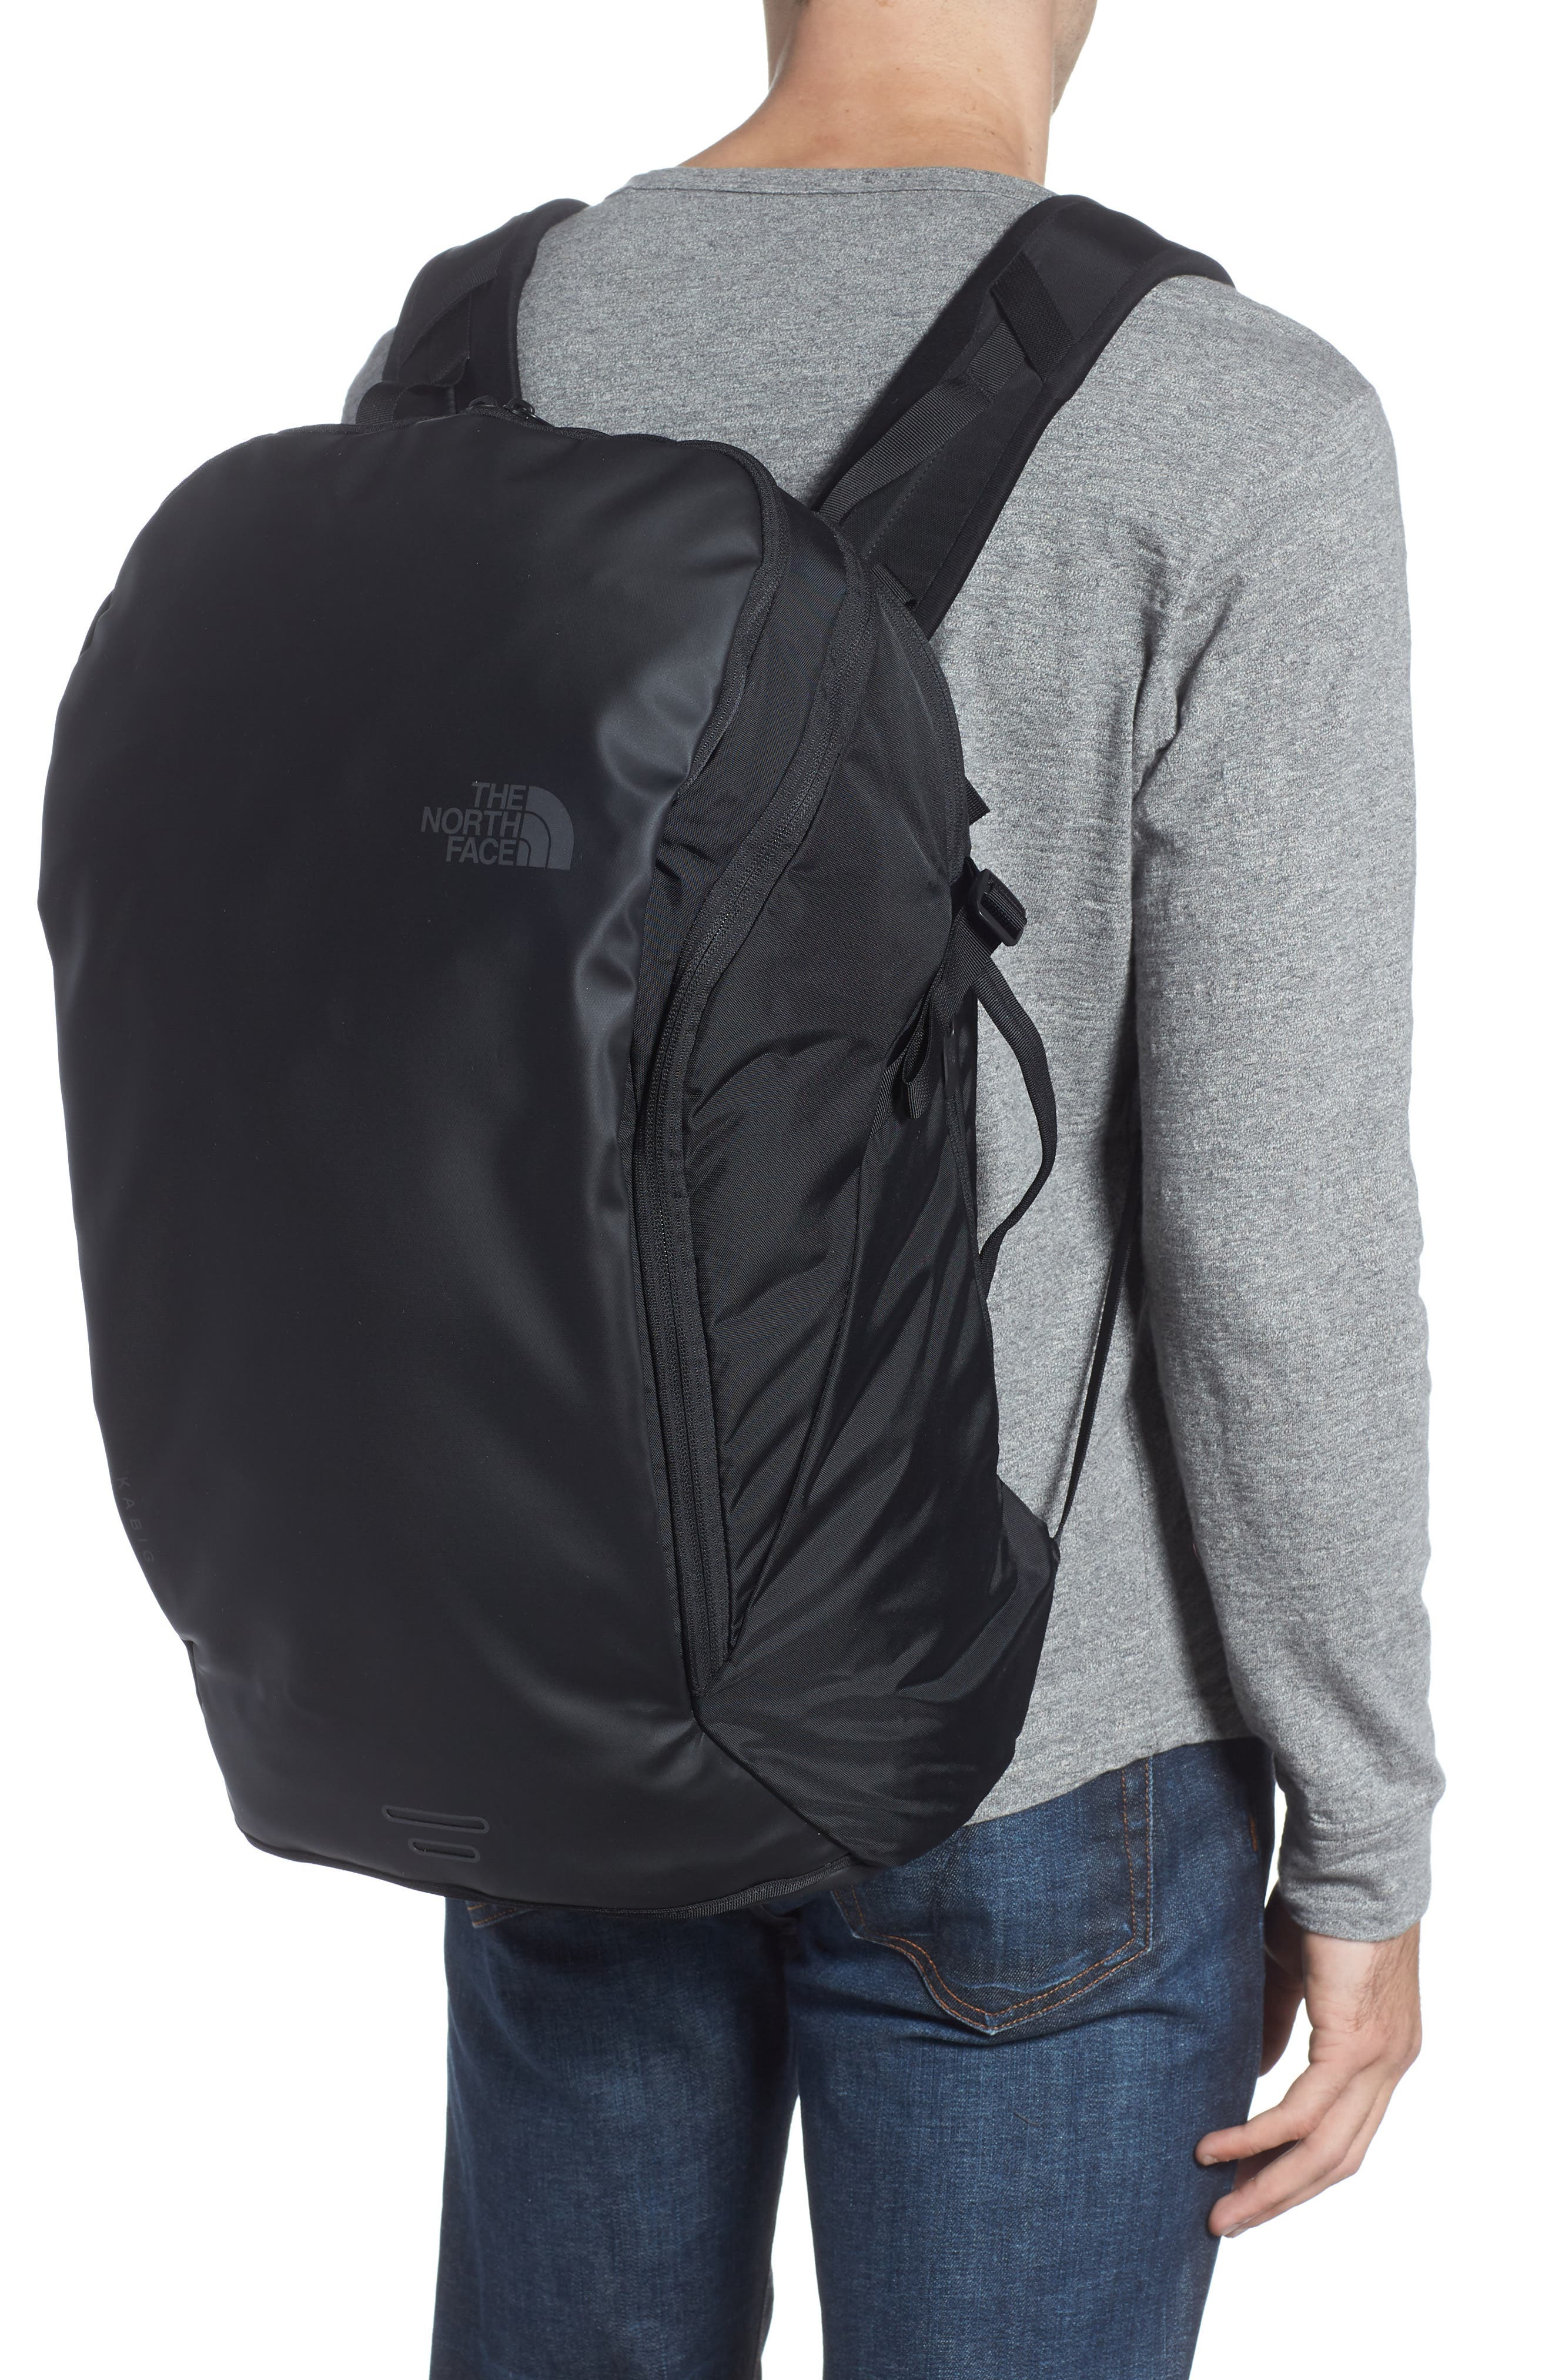 THE NORTH FACE, Kabig Backpack, Alternate thumbnail 2, color, 001